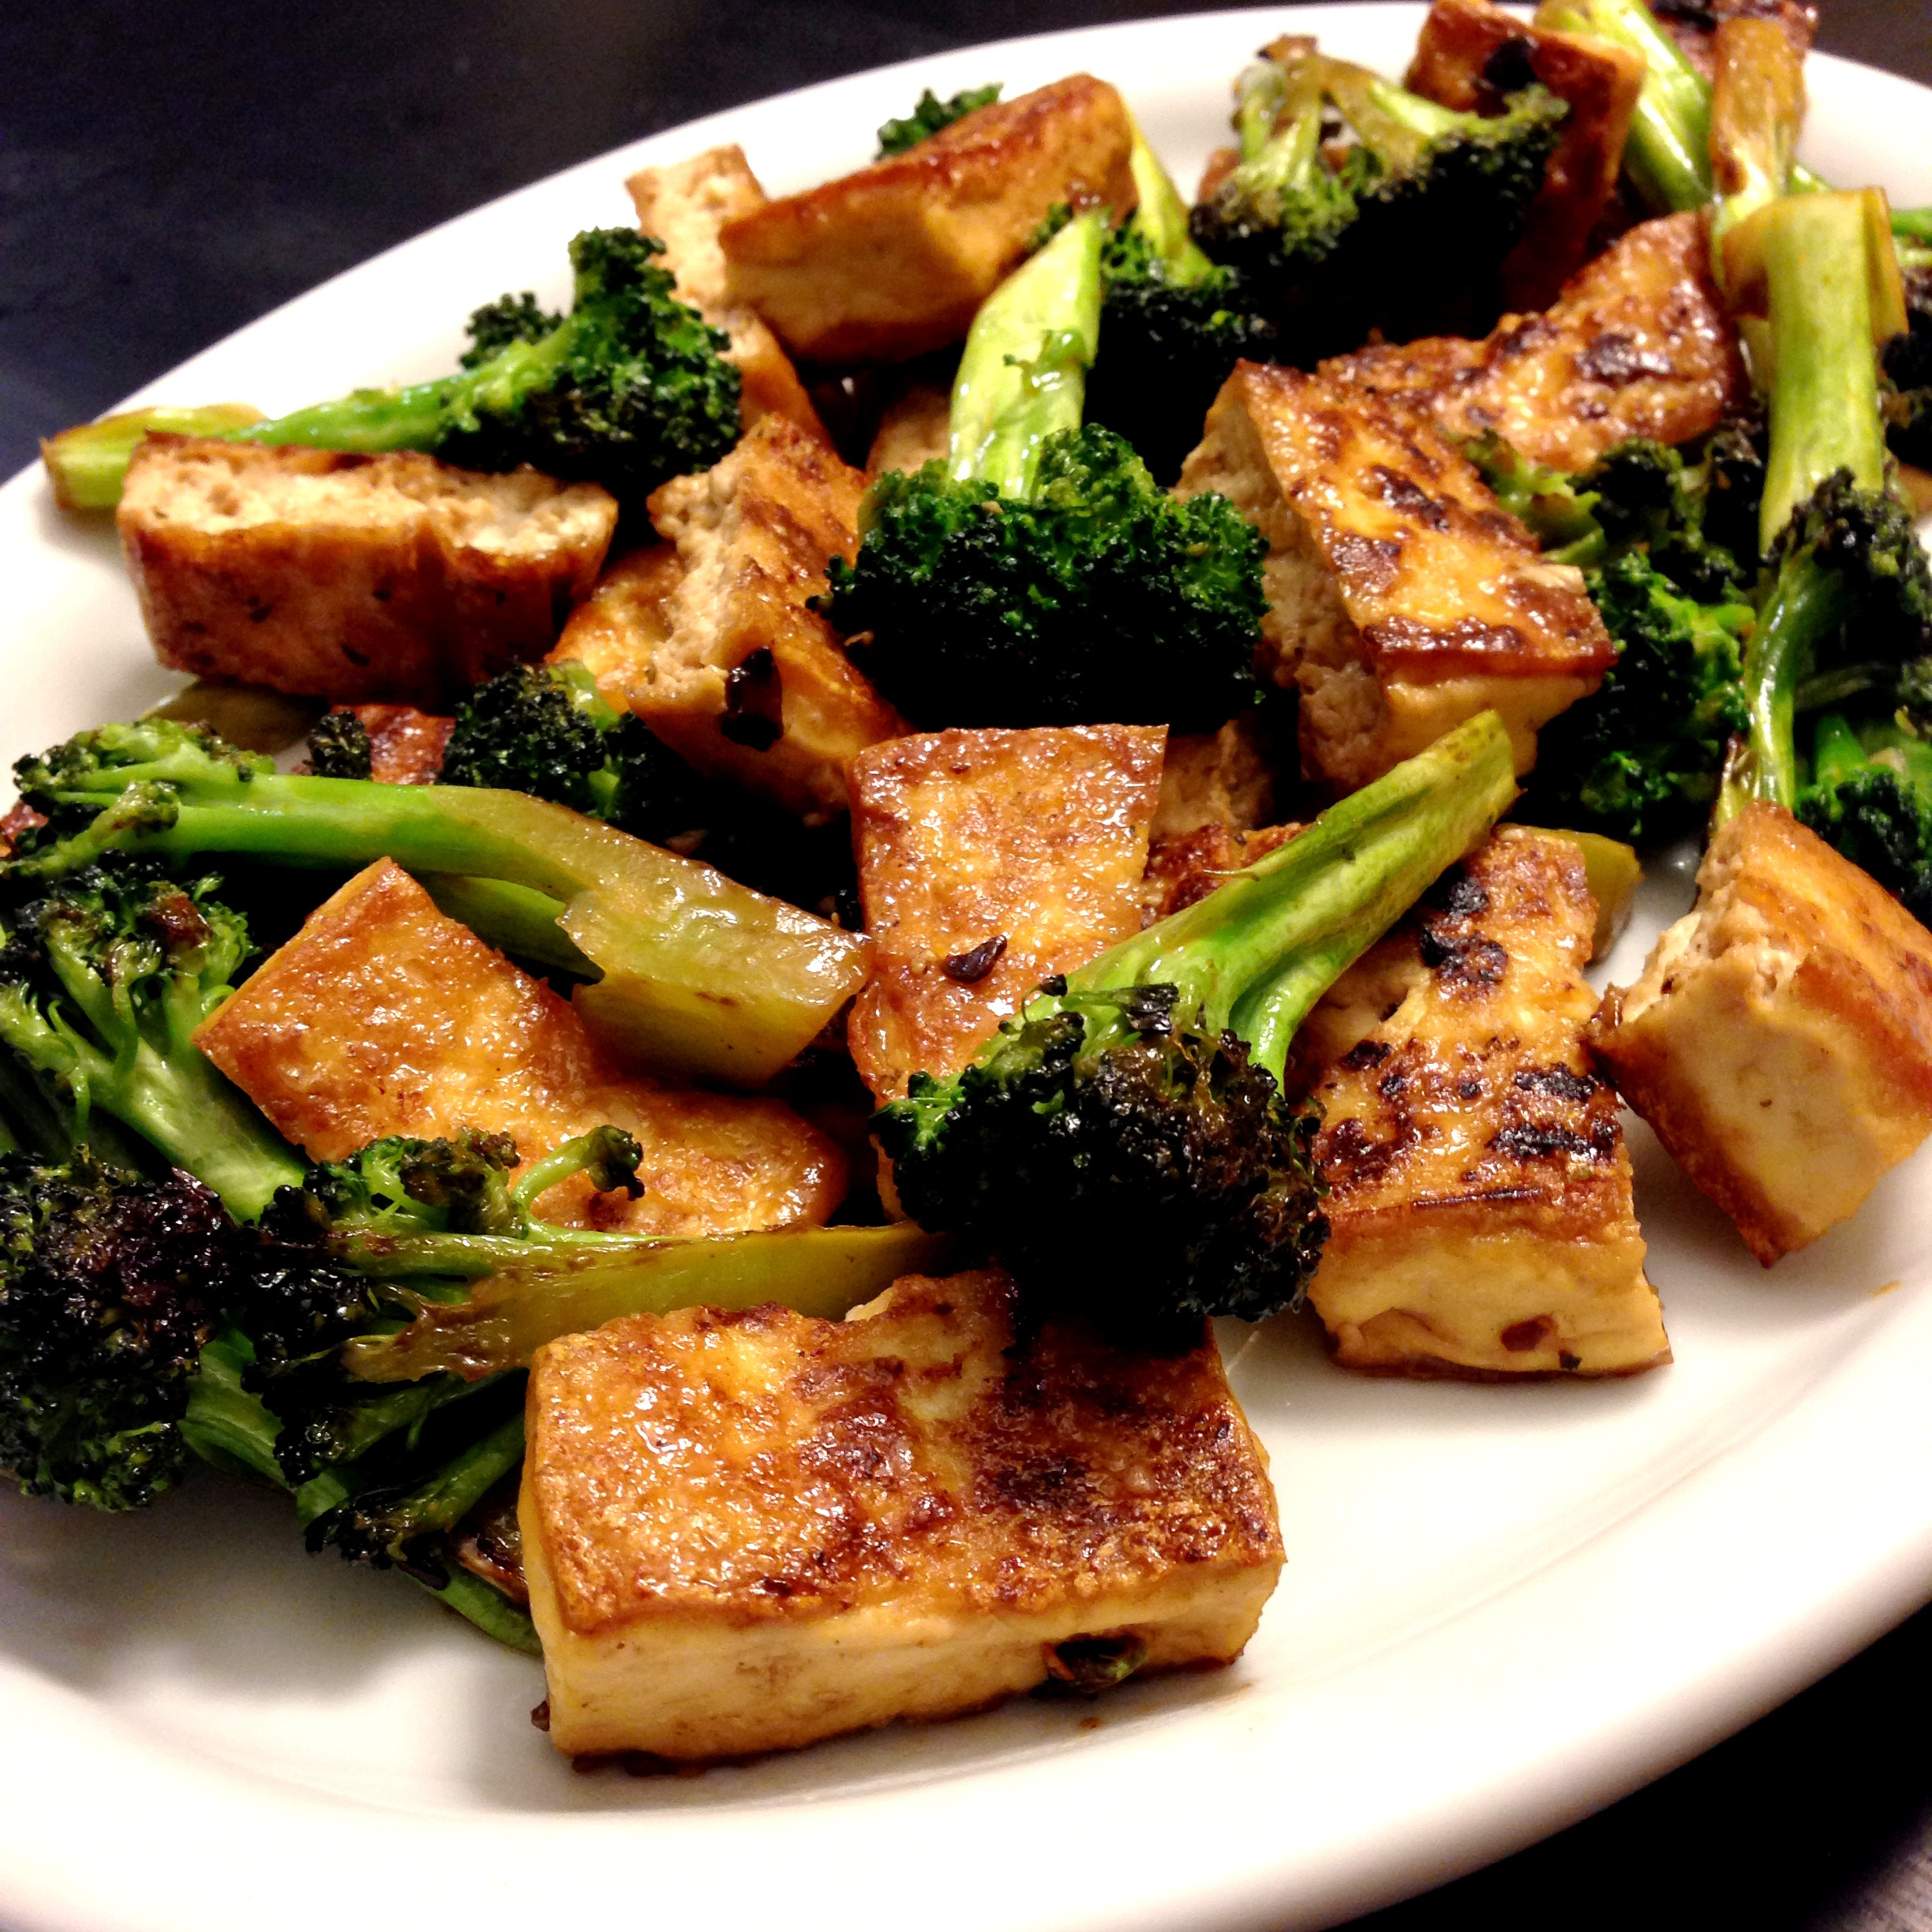 Tofu Recipes Healthy  Tofu Broccoli Stir fry — My Healthy Dish